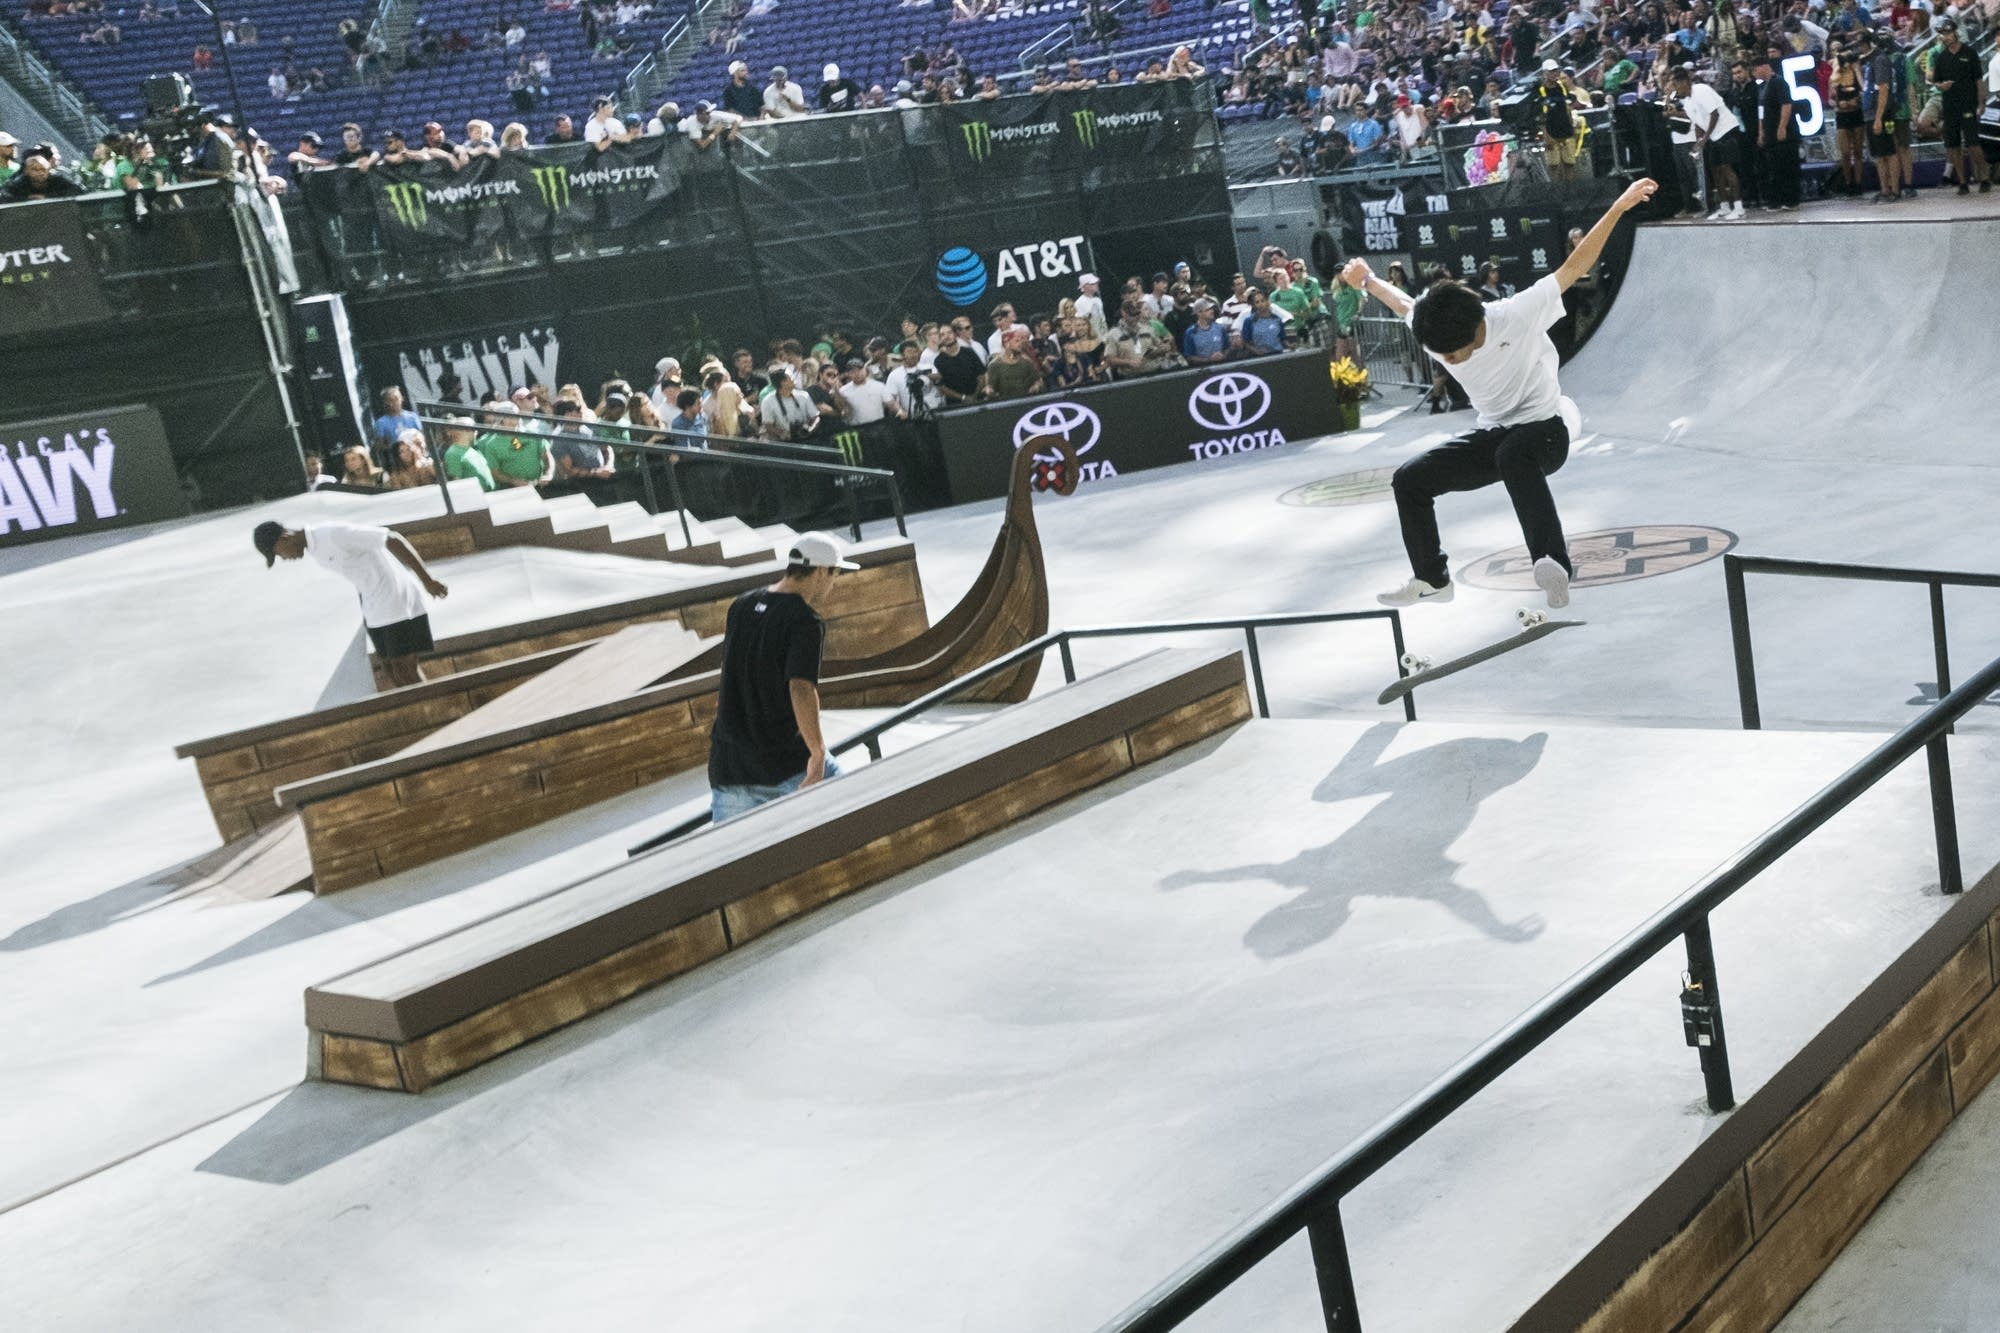 Yuto Horigome throws a flip off of a ramp during warm ups.